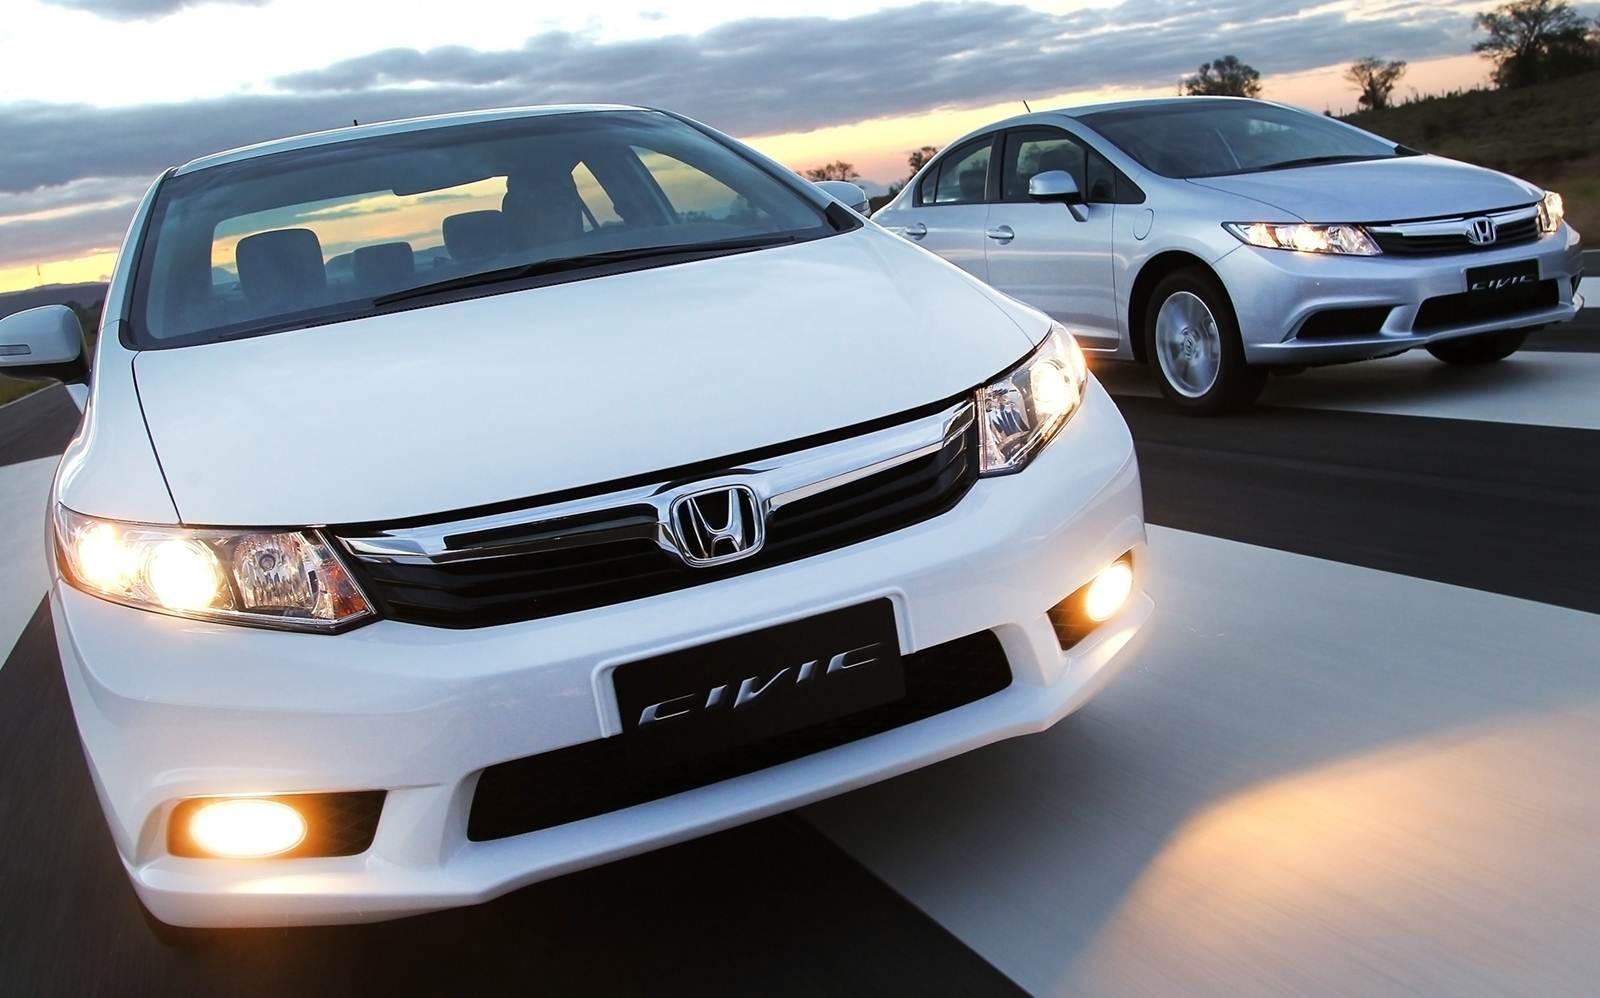 Cars Wallpapers And Specefication Honda Civic 2014